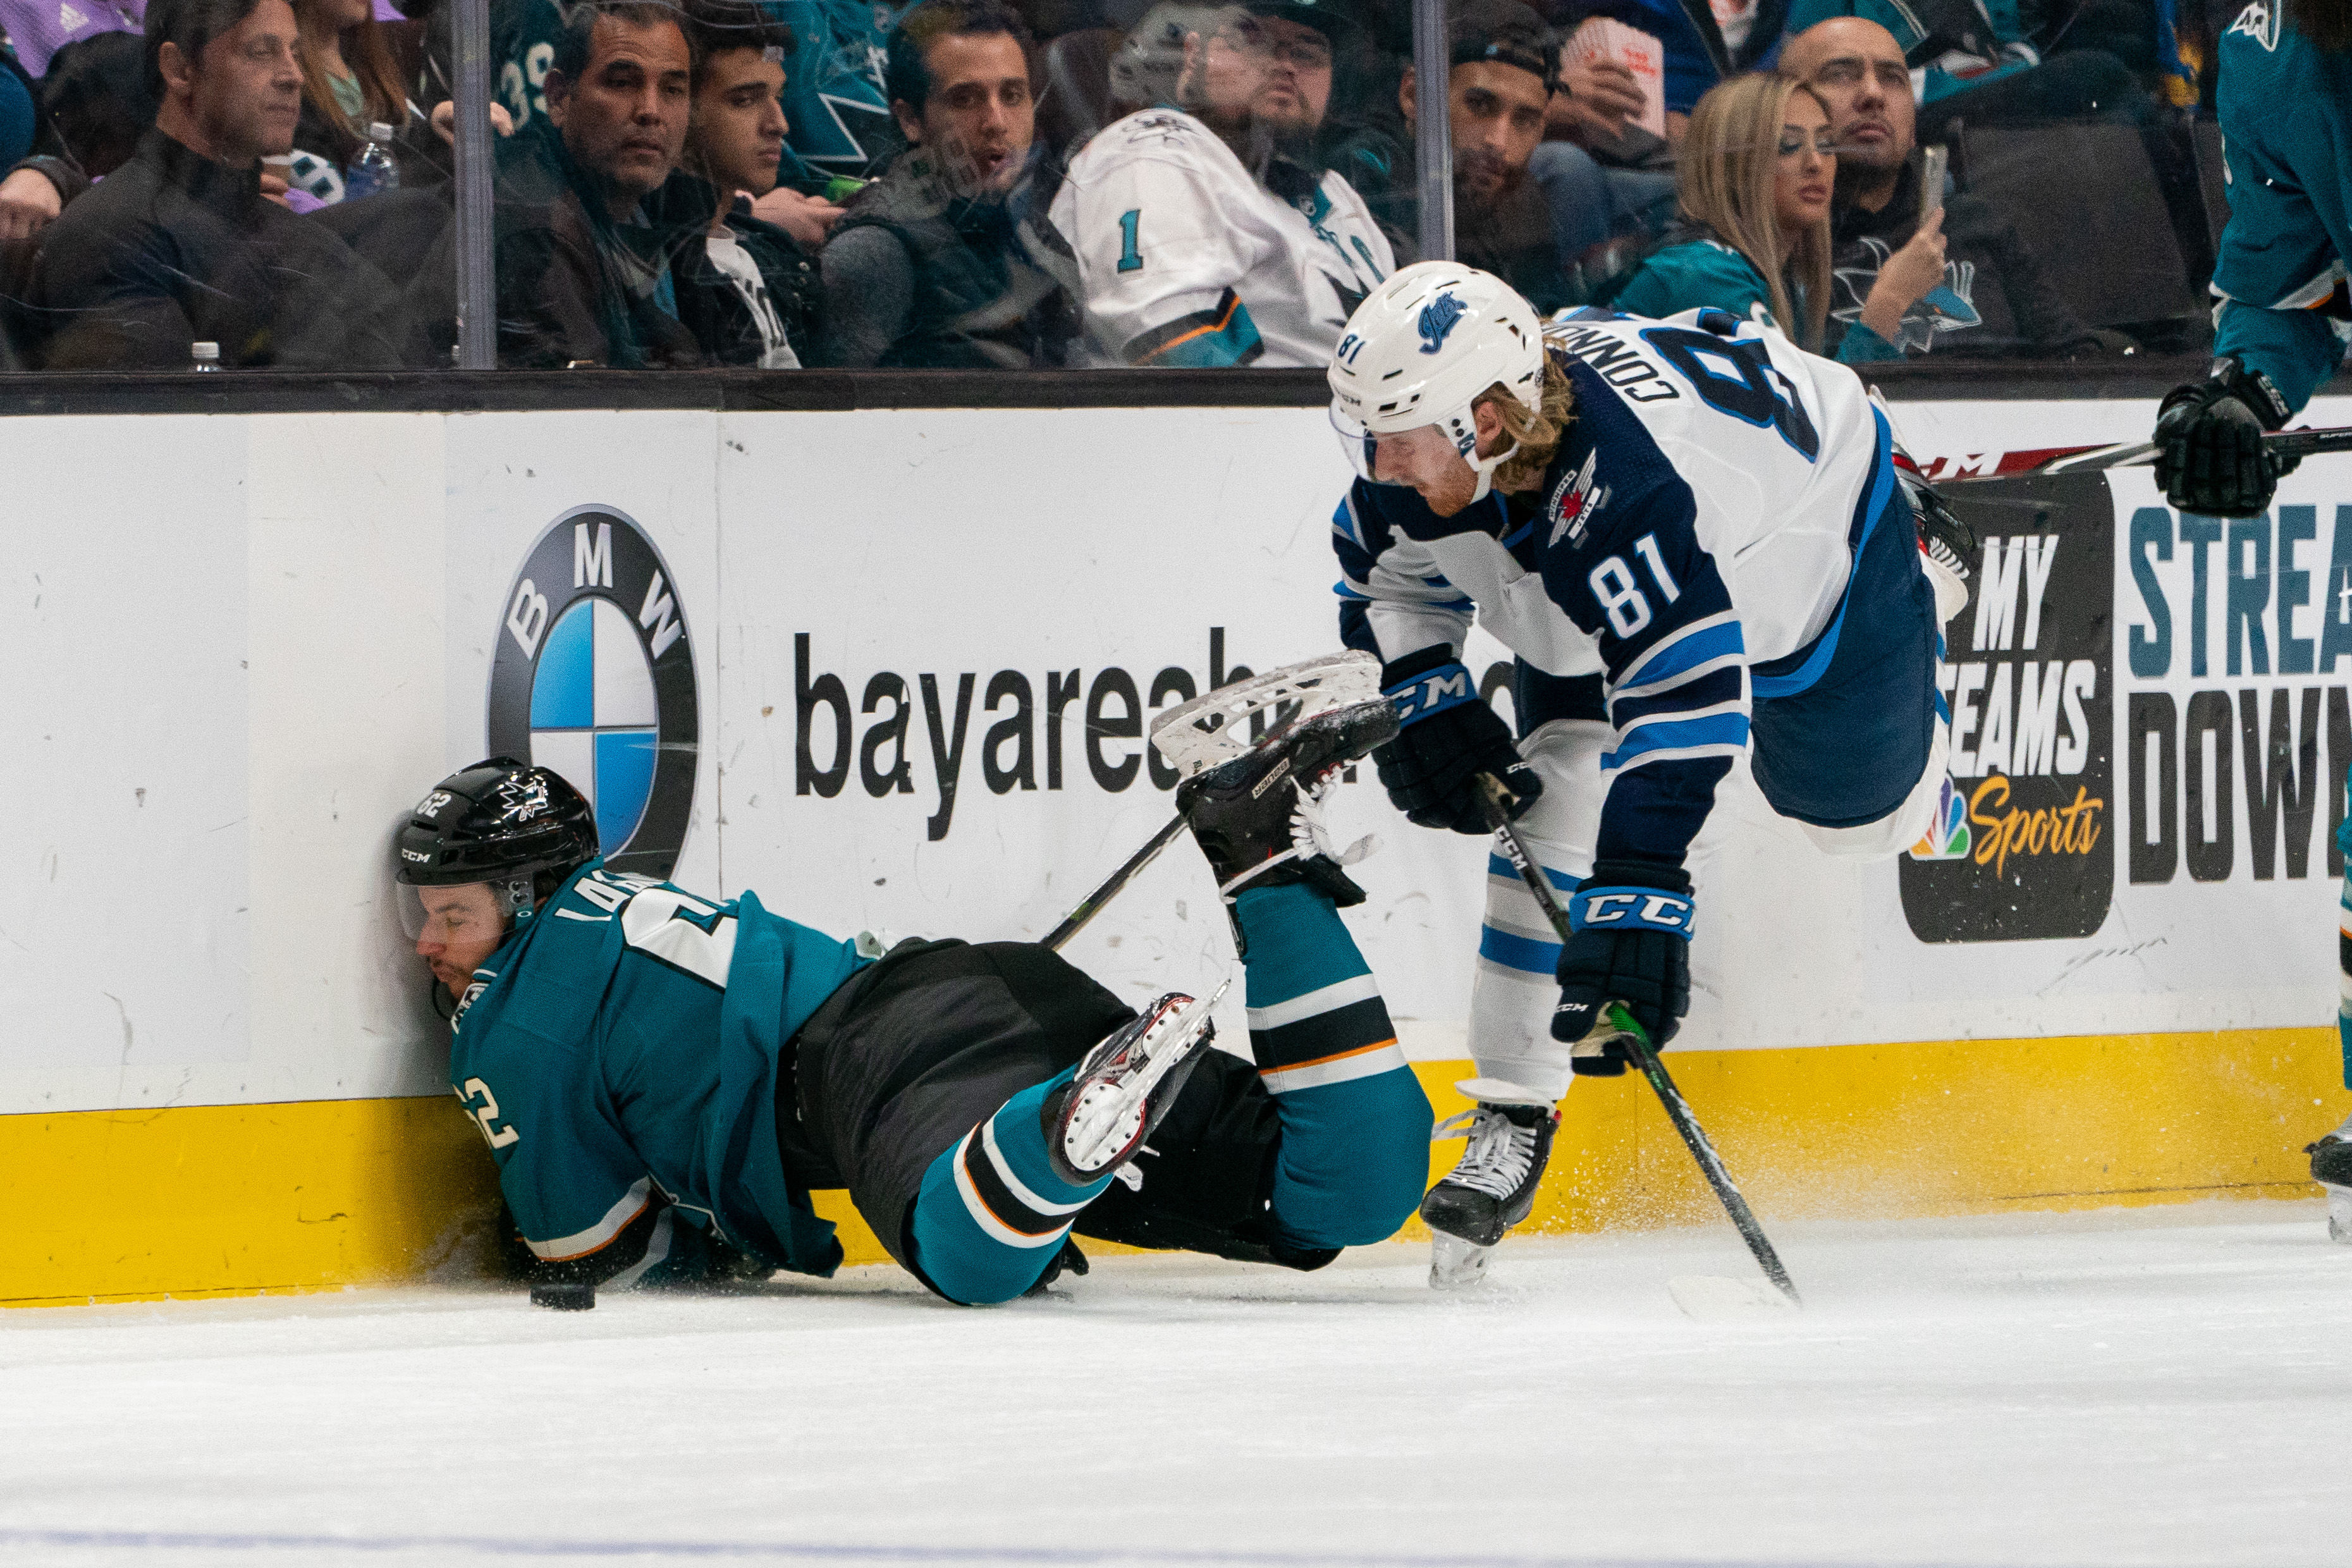 Nov 27, 2019; San Jose, CA, USA; San Jose Sharks right wing Kevin Labanc (62) is checked into the boards by Winnipeg Jets left wing Kyle Connor (81) during the second period at SAP Center at San Jose.